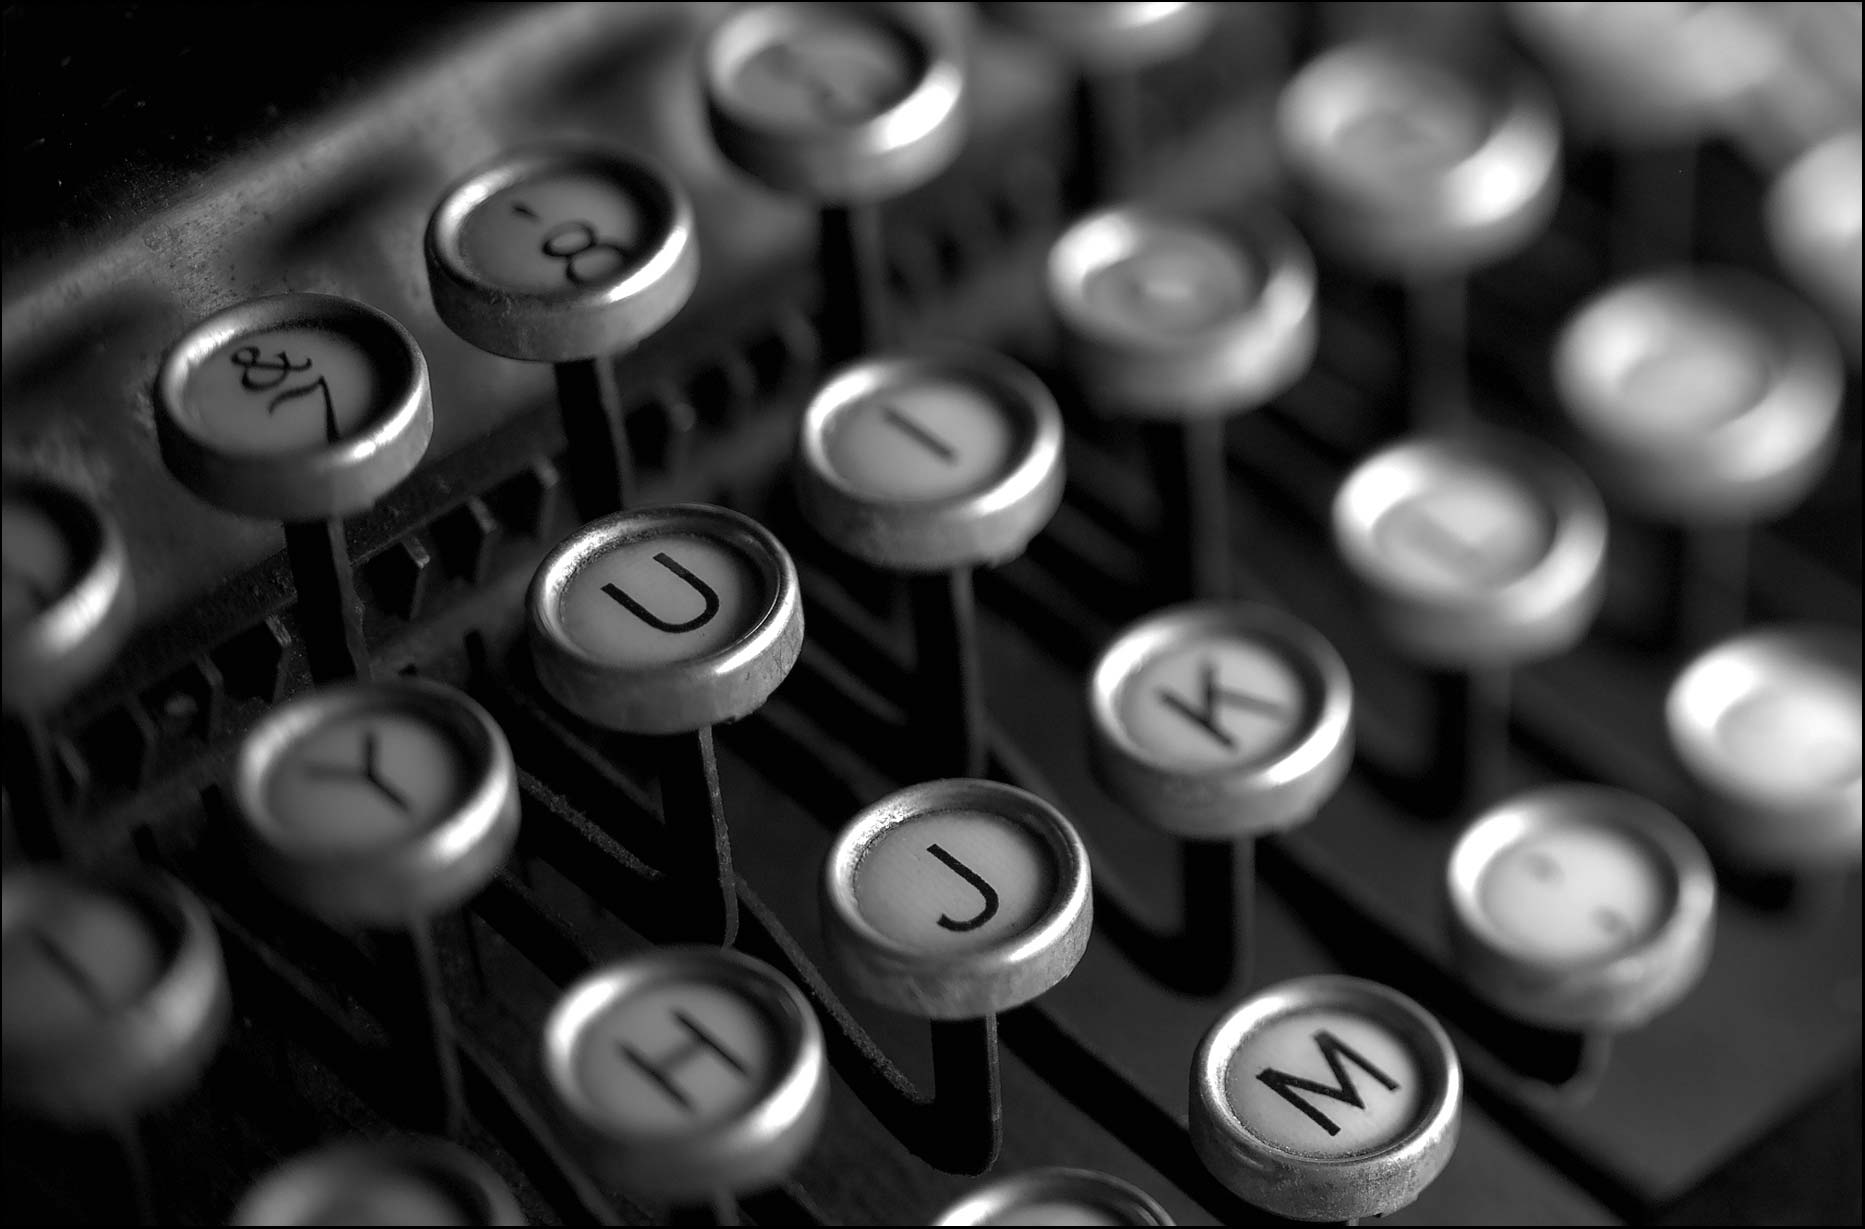 Black and White image of typewriter keys